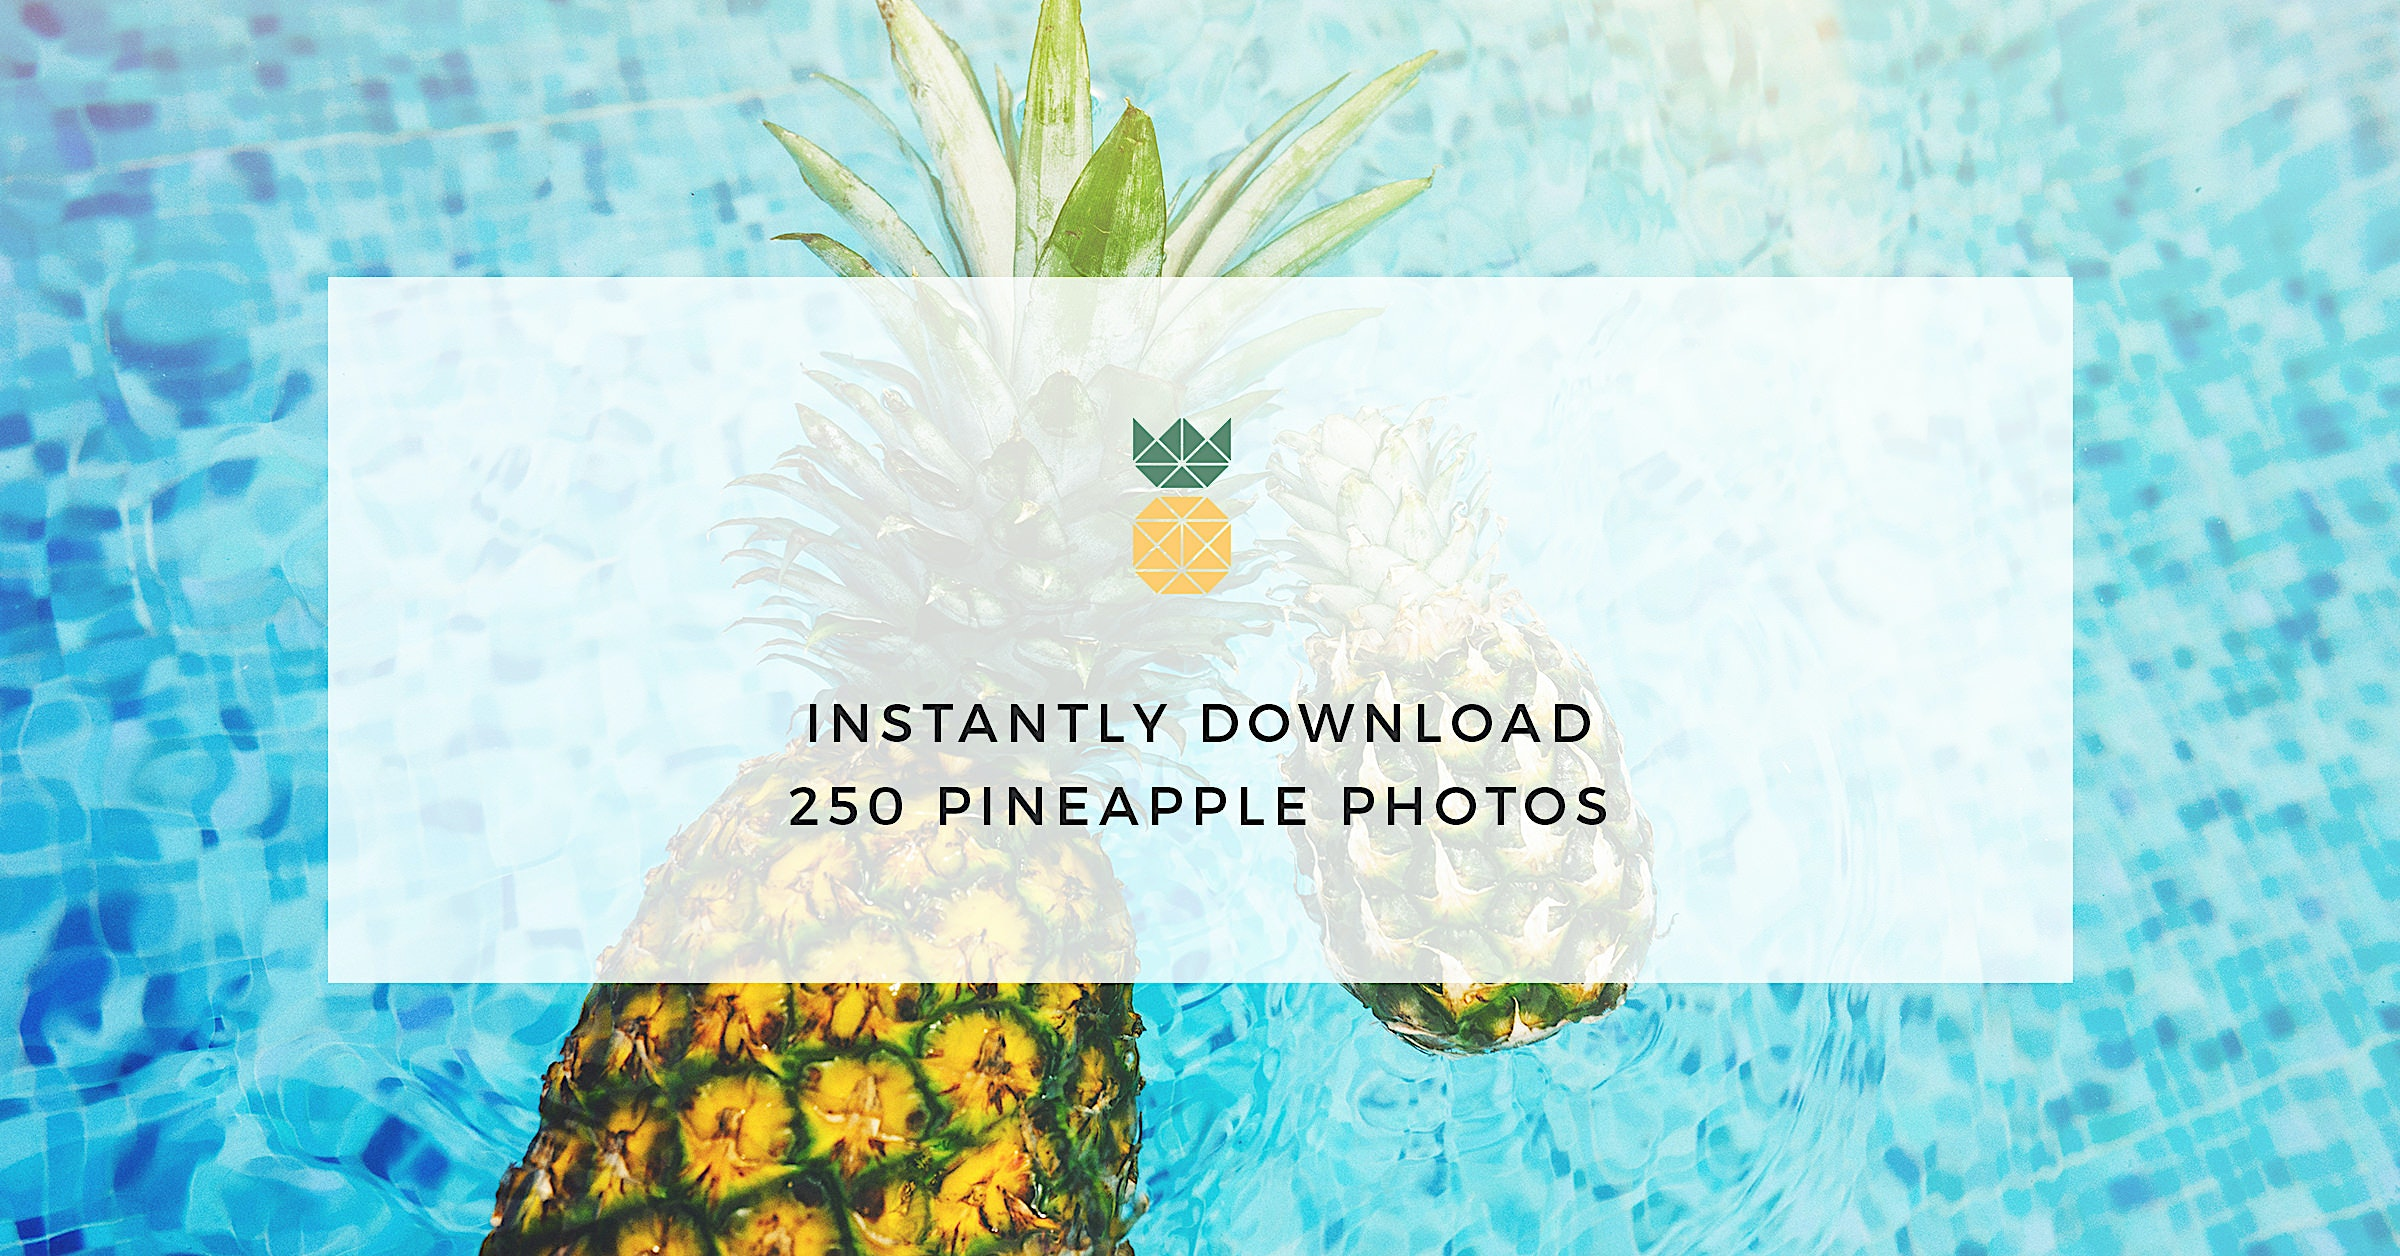 Instantly Download Our First 250 Pineapple Photos